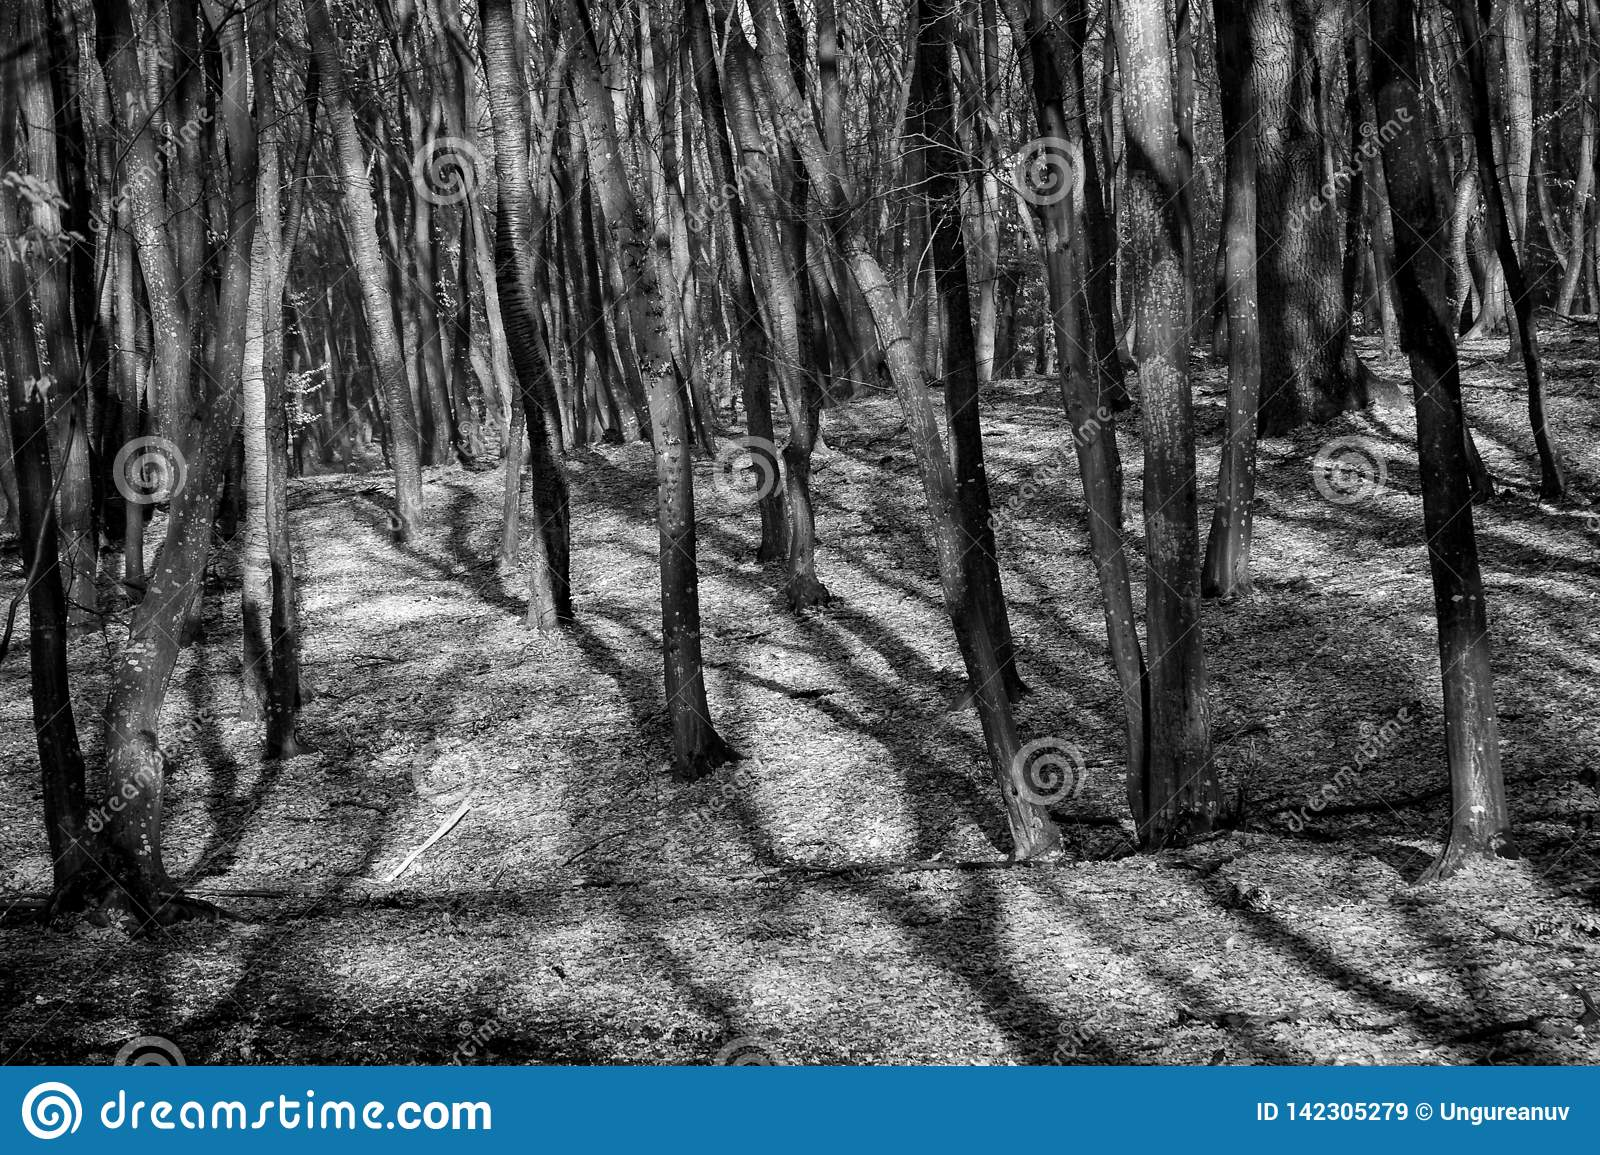 Hoia Baciu Forest - World Most Haunted Forest With A